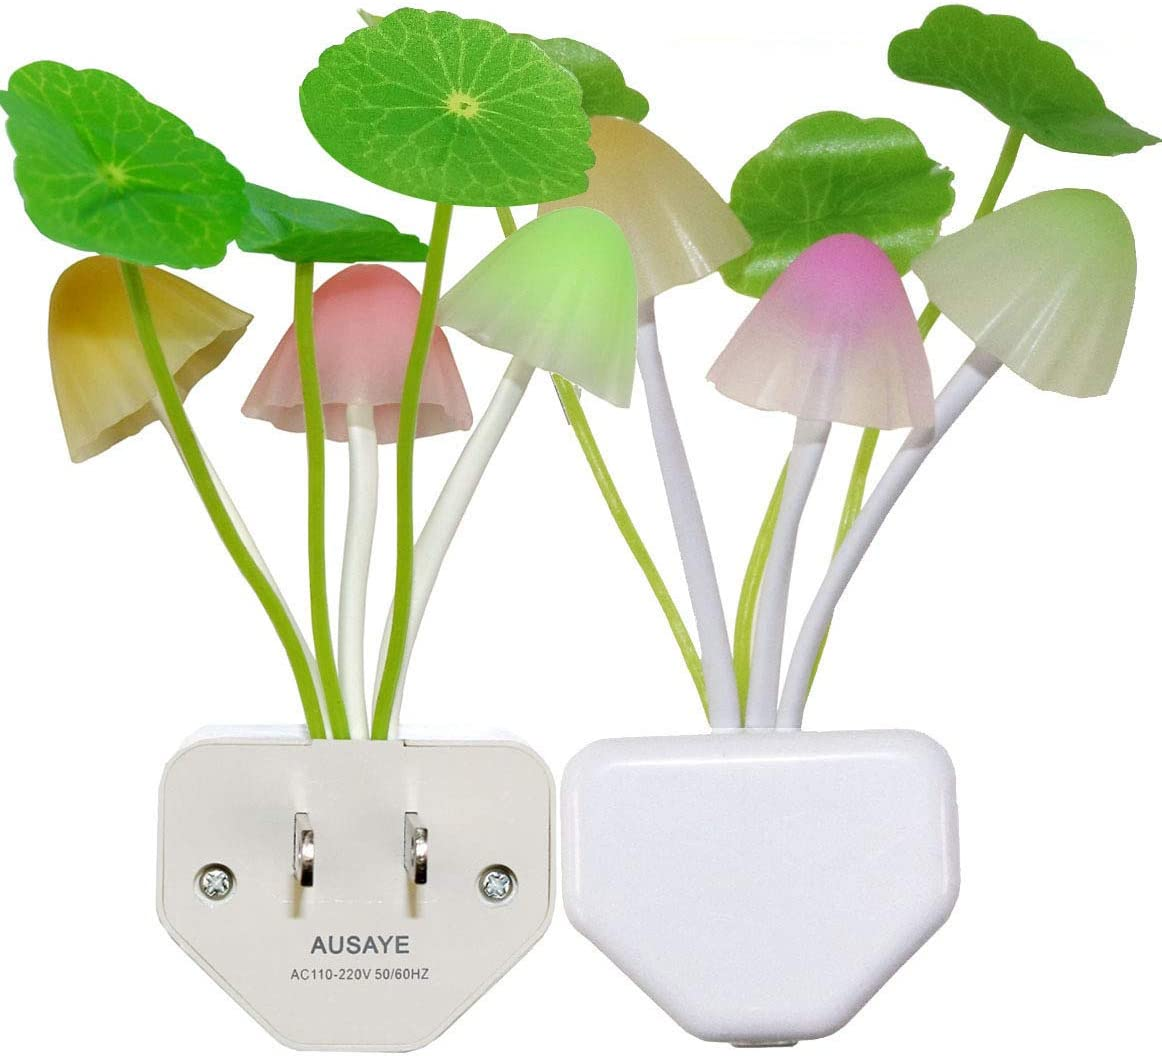 2 Pack Led Night Light w/Dusk to Dawn Sensor,AUSAYE 0.6W Plug-in Night Light Lamp, Night Lights for Kids Adults Mushroom Night Light Wall Lamps NightLight for Mothers Day Gifts